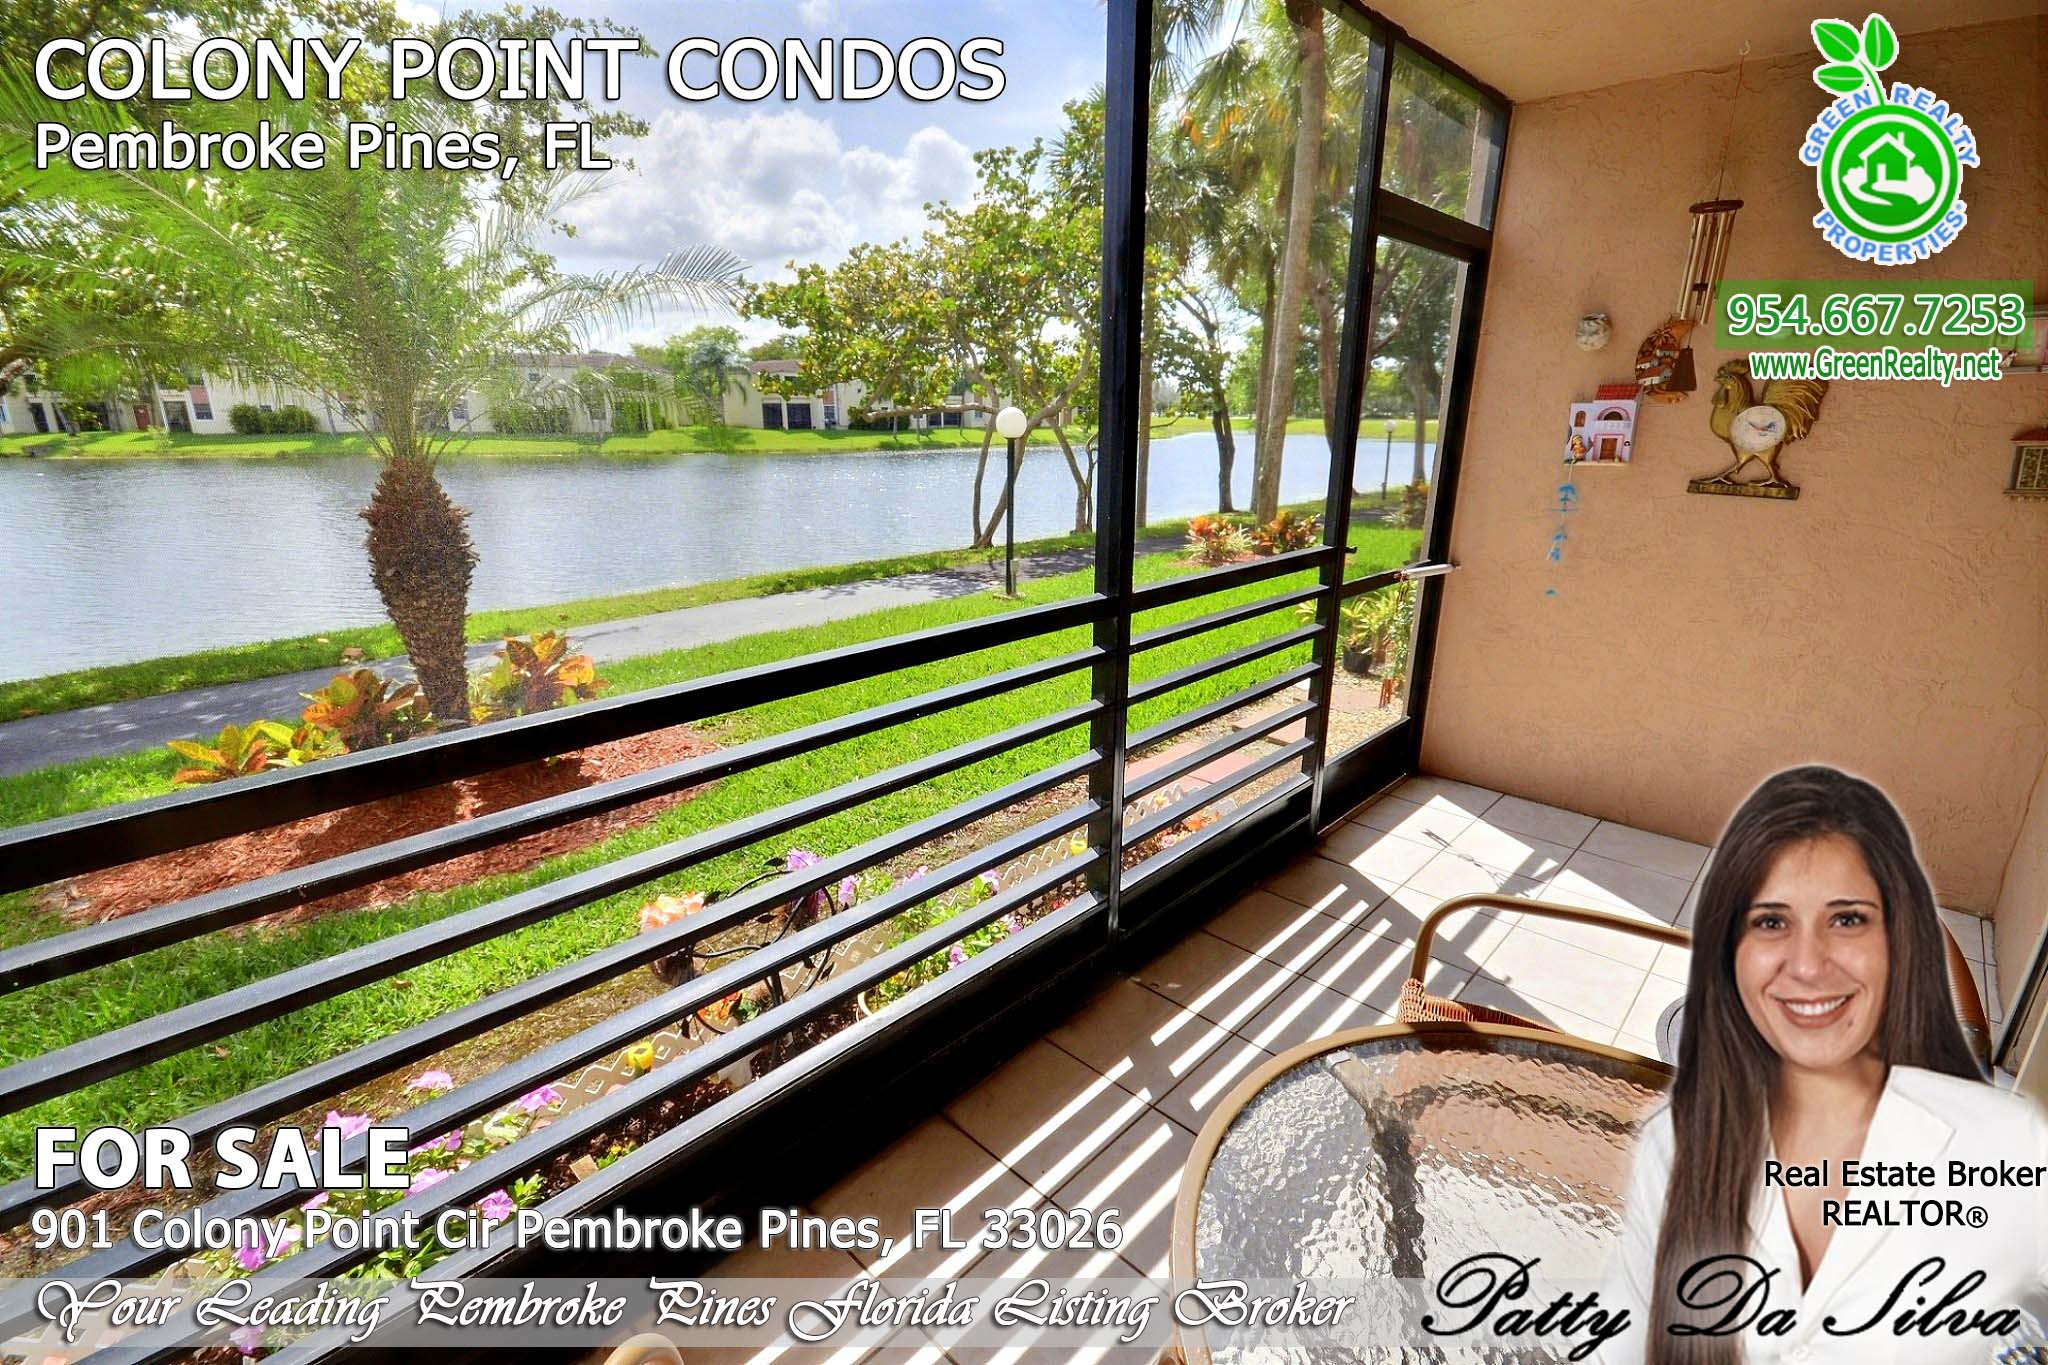 901 Colony Point Cir, Unit 112 - Pembroke Pines Homes For Sale (12)